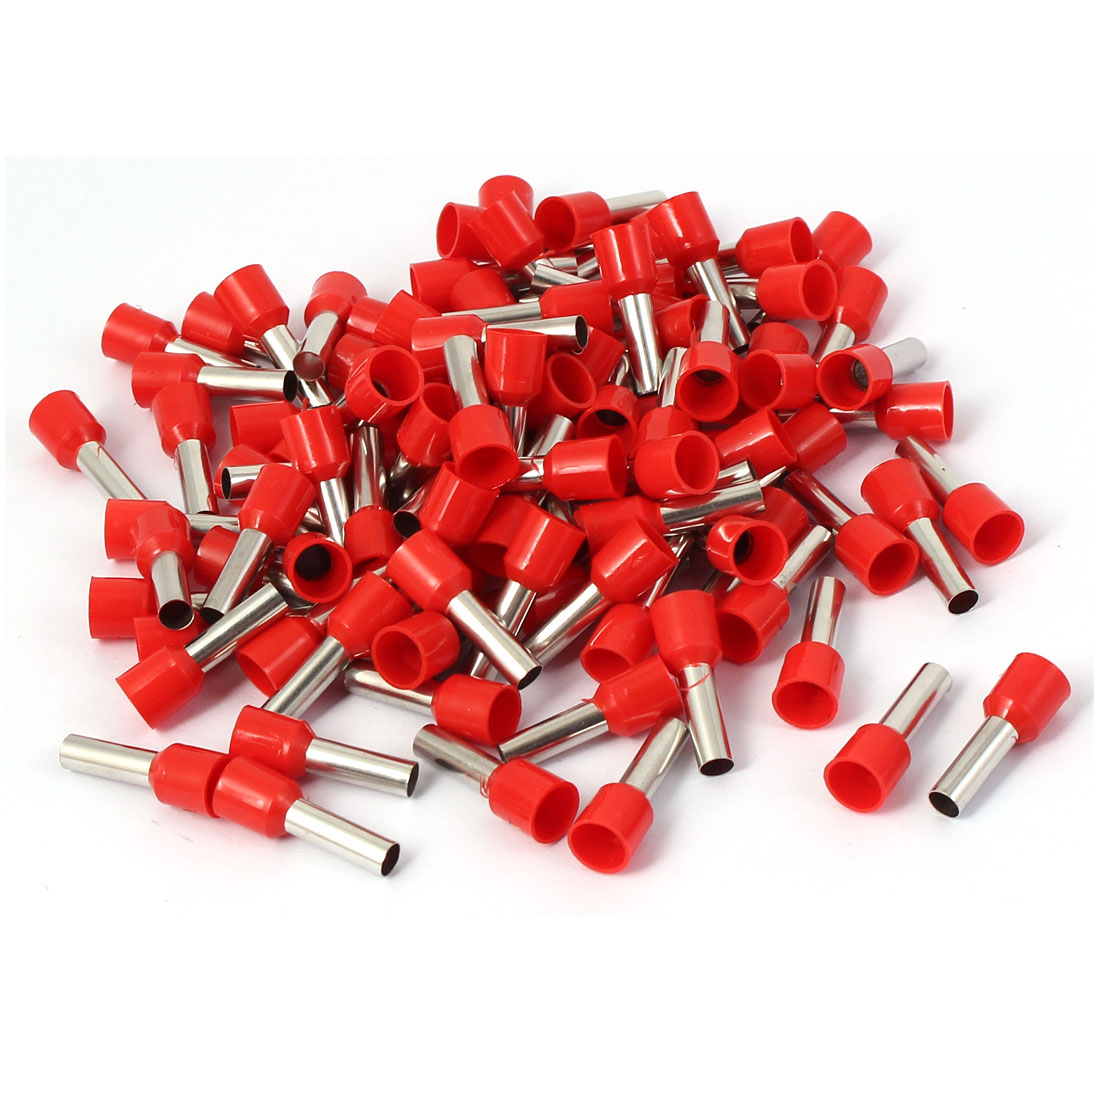 E6012 Tube Style Electric Wire Ends Sleeve Crimp Insulated Terminal 100pcs